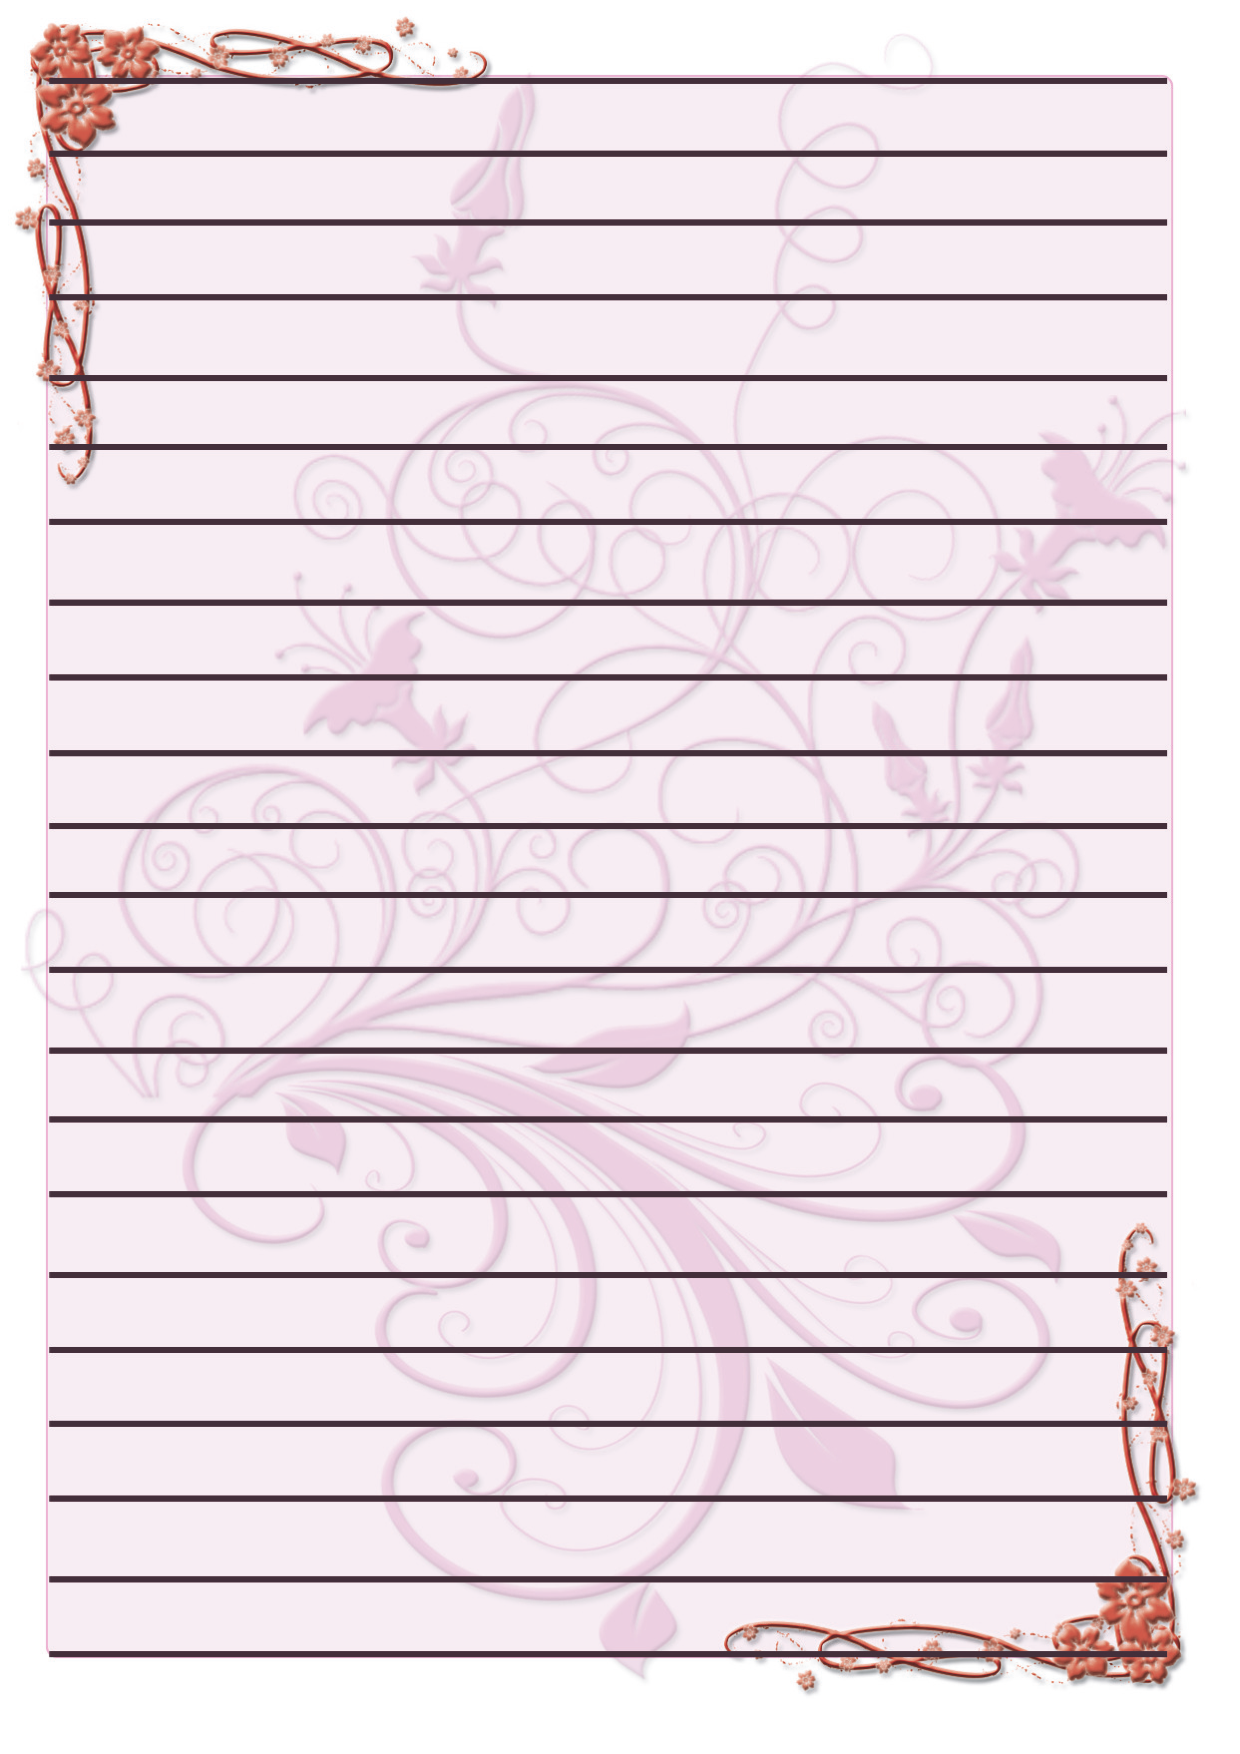 lined writing paper with borders Printable writing paper, ruled paper choose from blank paper with borders, ruled paper, and seasonal writing paper there's a variety to choose from with borders or regular lined paper.